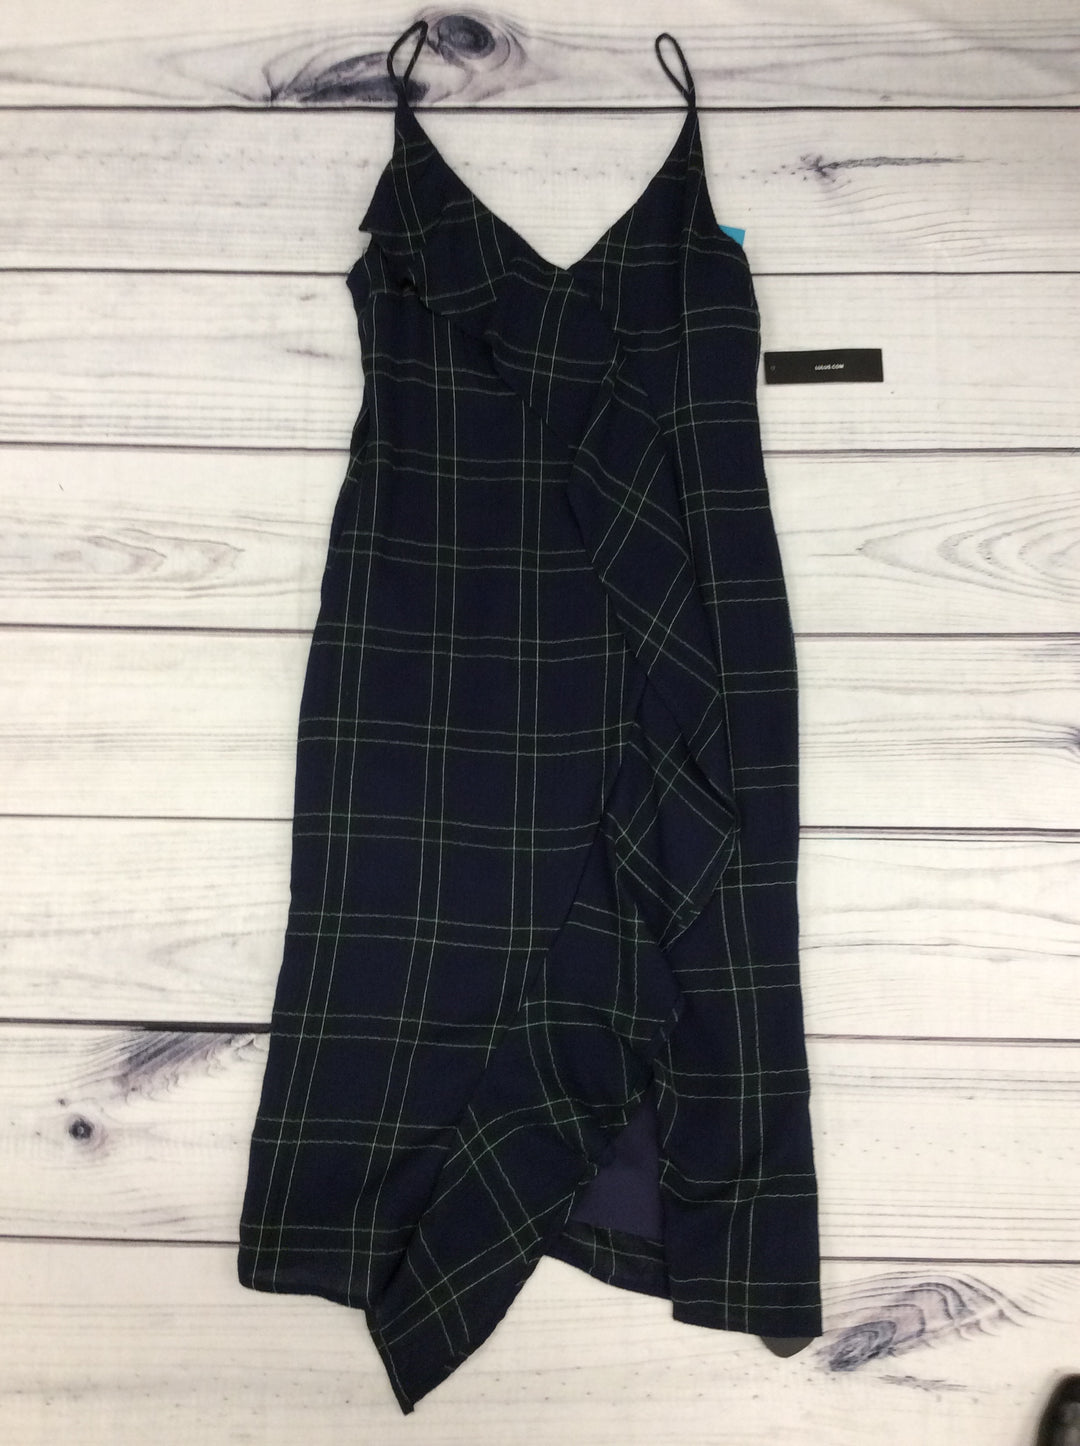 NWT Lulus Dress - <UL> <LI>SIZE MEDIUM</LI> <LI>V-NECK FRONT AND BACK</LI> <LI>SLEEVELESS</LI> <LI>PLAID DESIGN WITH RUFFLE GOING DOWN THE FRONT OF DRESS</LI> <LI>NAVY, GREEN, BLACK, EXPOSED IVORY STITCHING</LI> </UL>